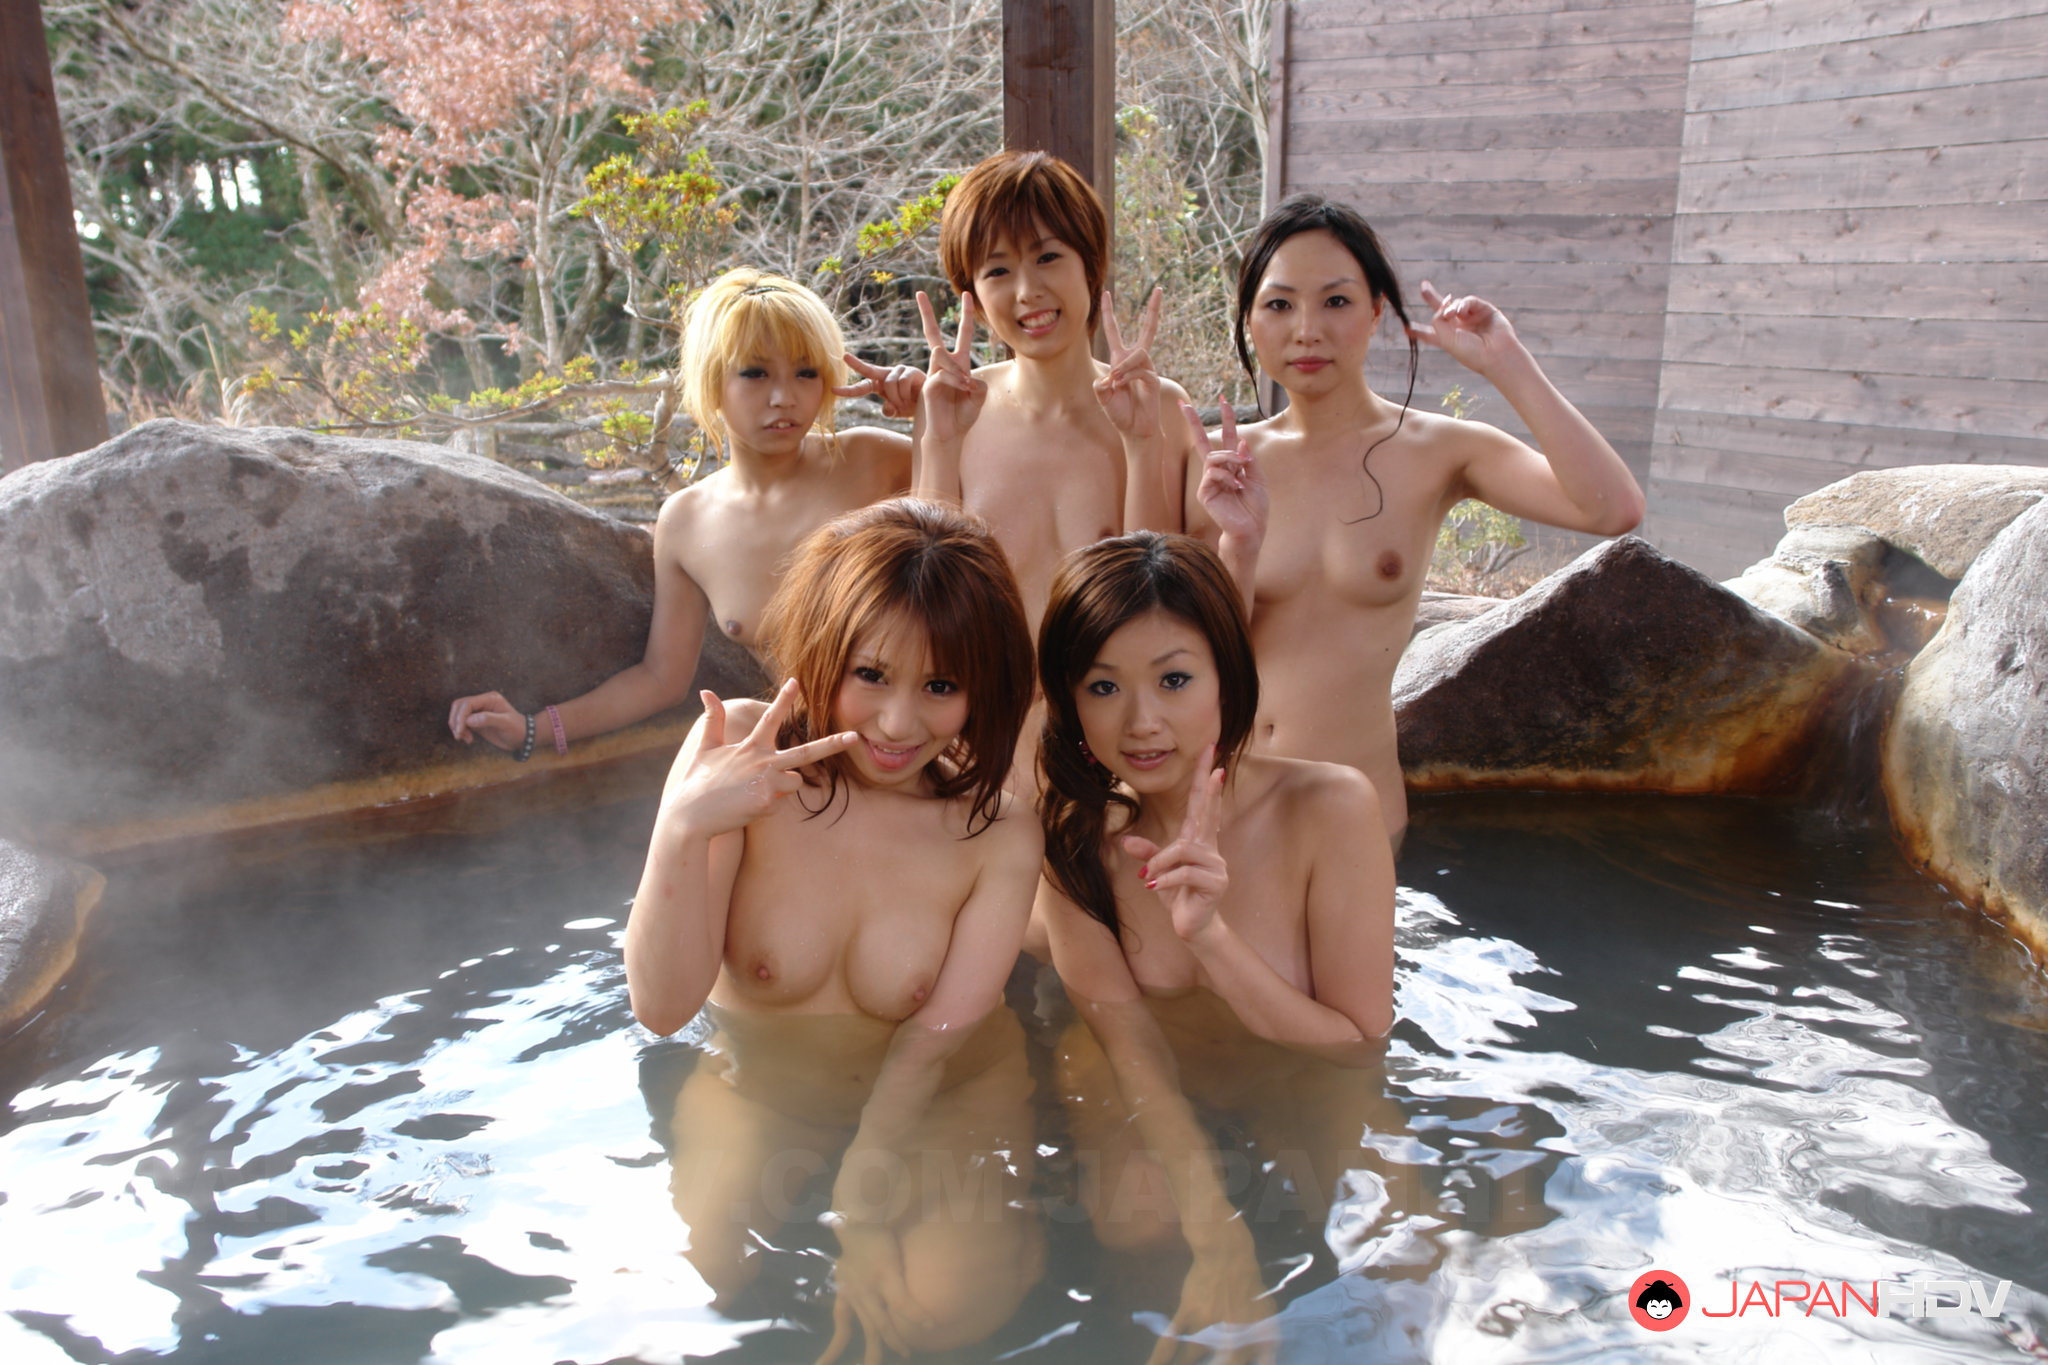 Nude Japanese Girls Photos